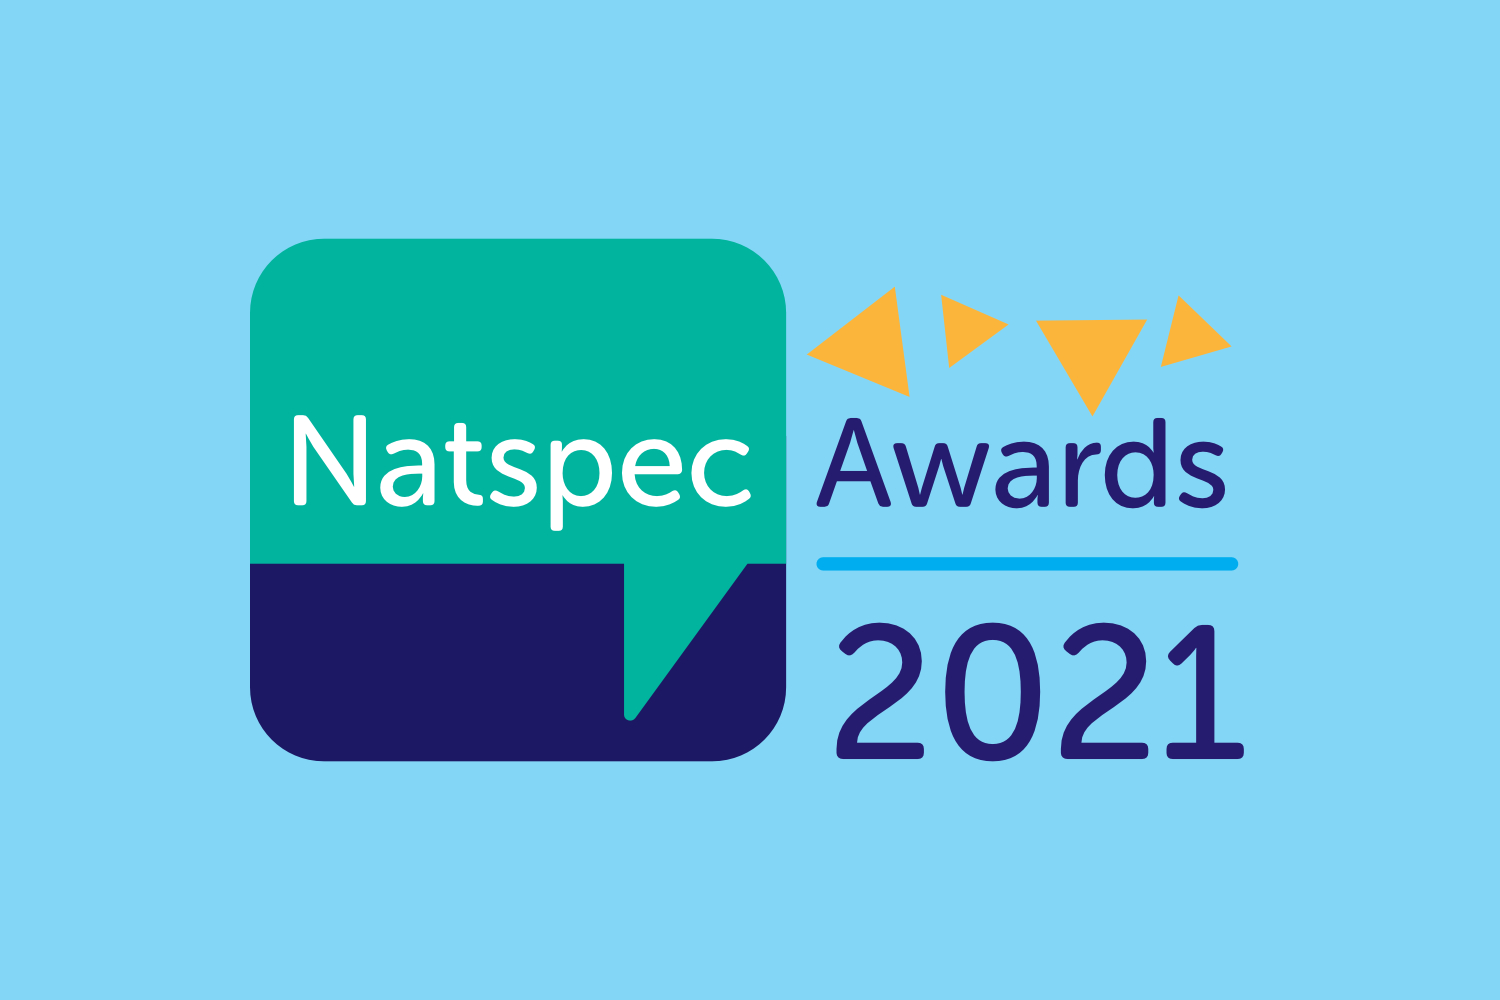 Natspec Awards 2021 logo on a pale blue background